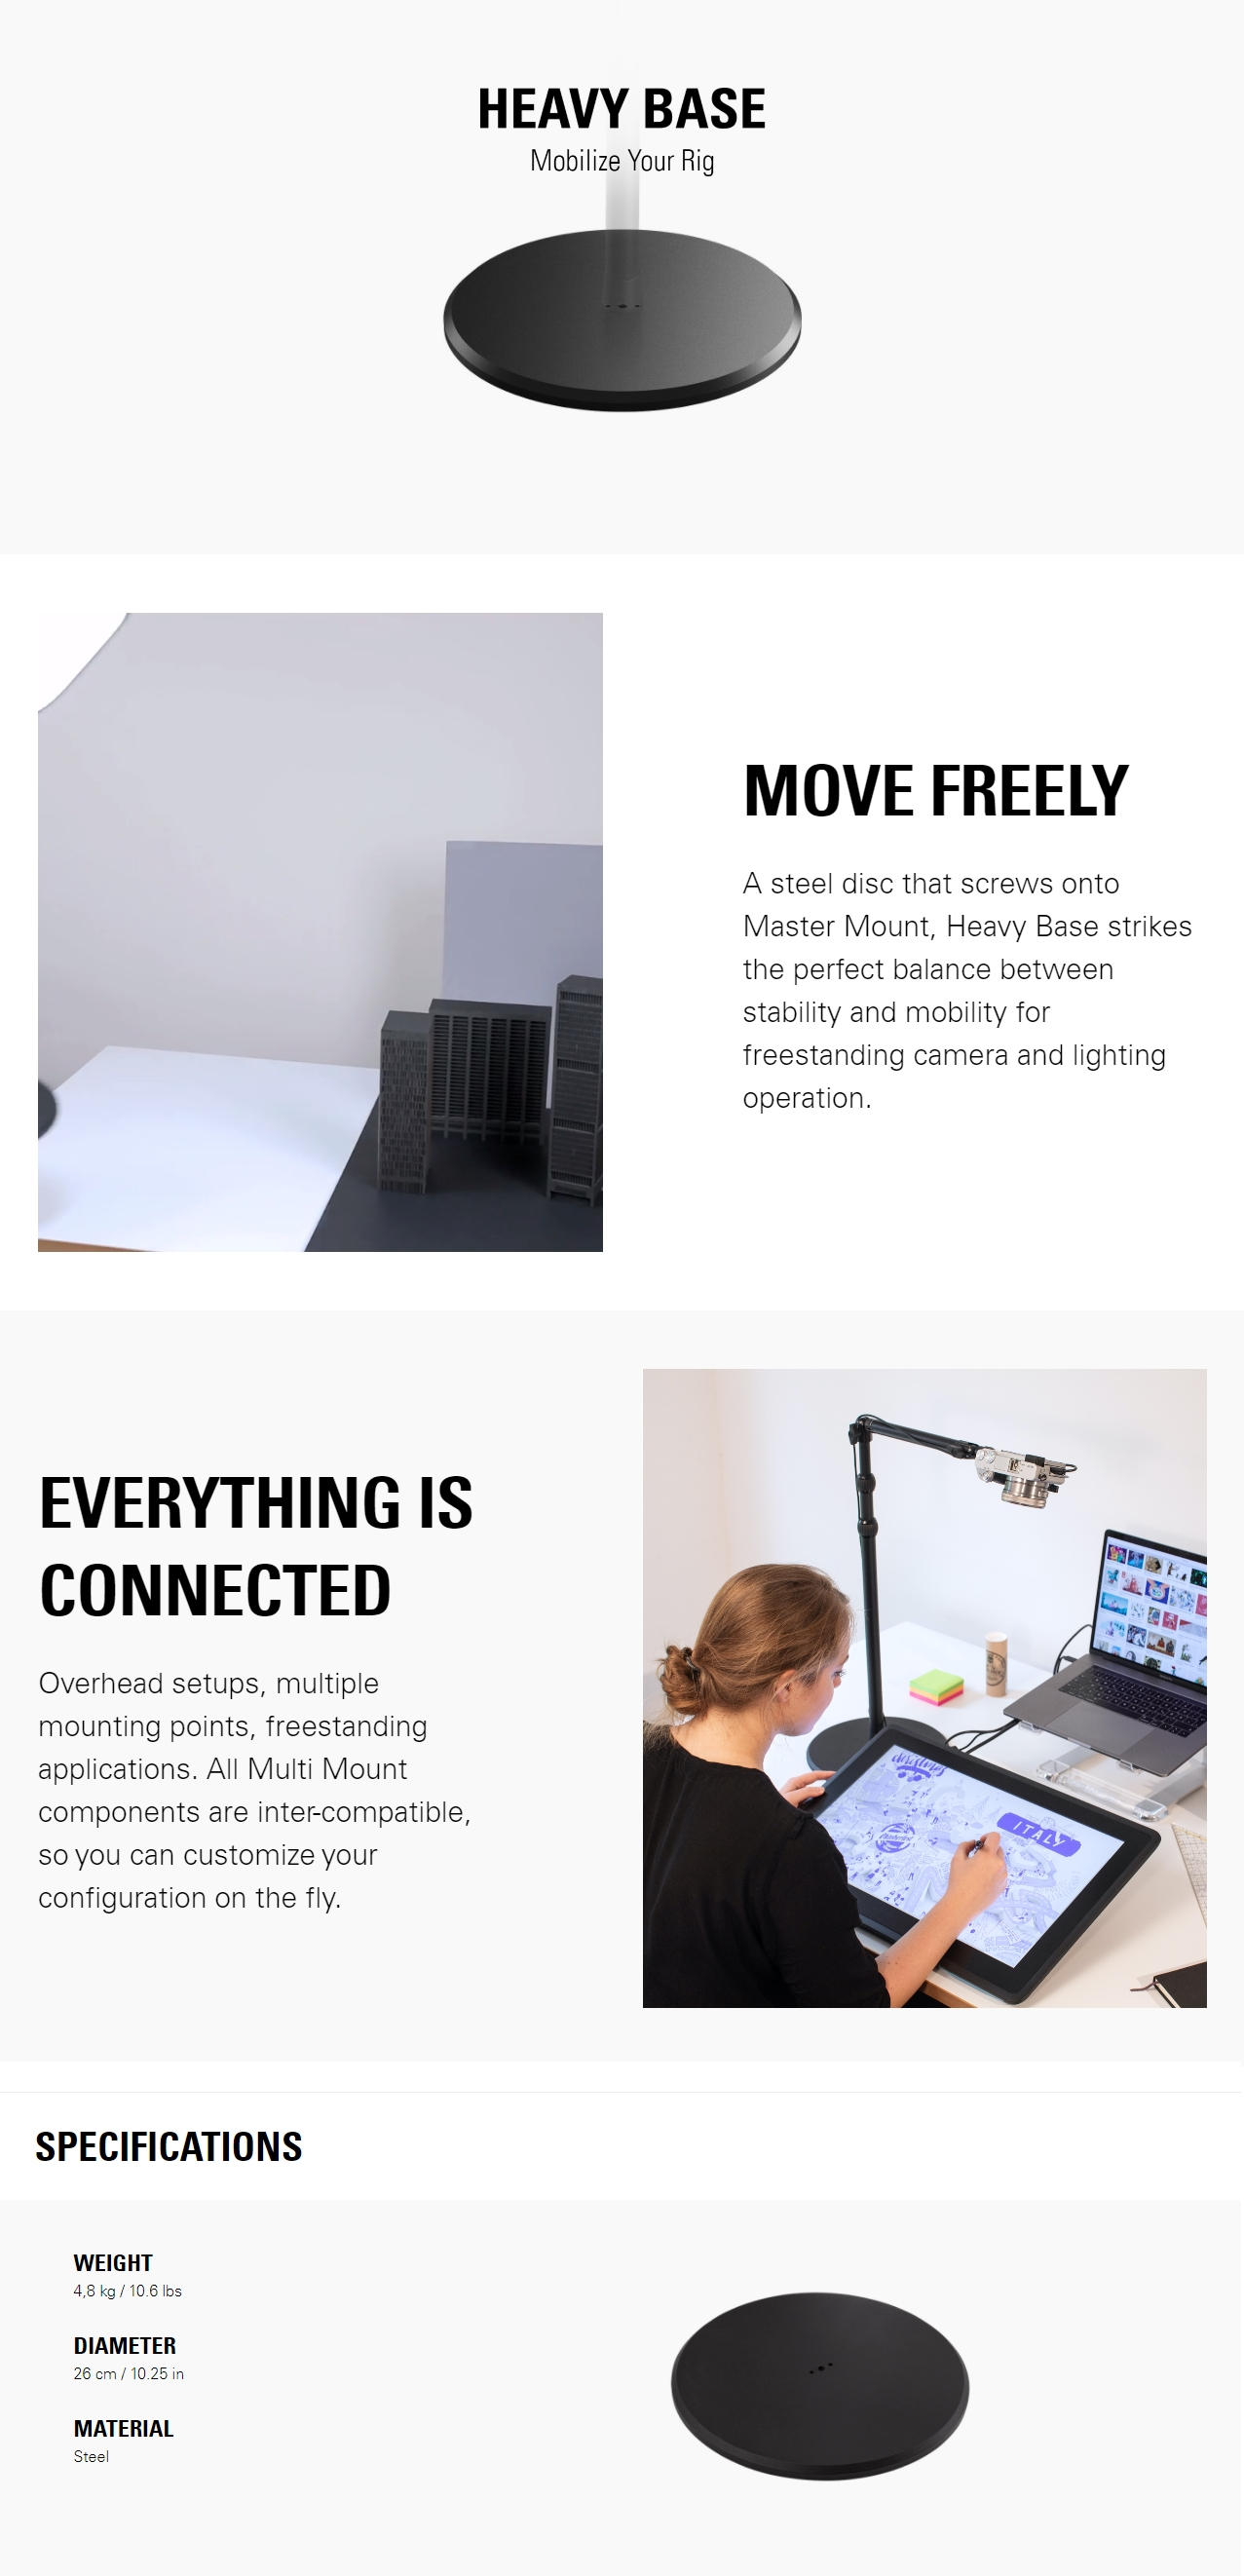 A large marketing image providing additional information about the product Elgato Multi Mount System - Heavy Base - Additional alt info not provided